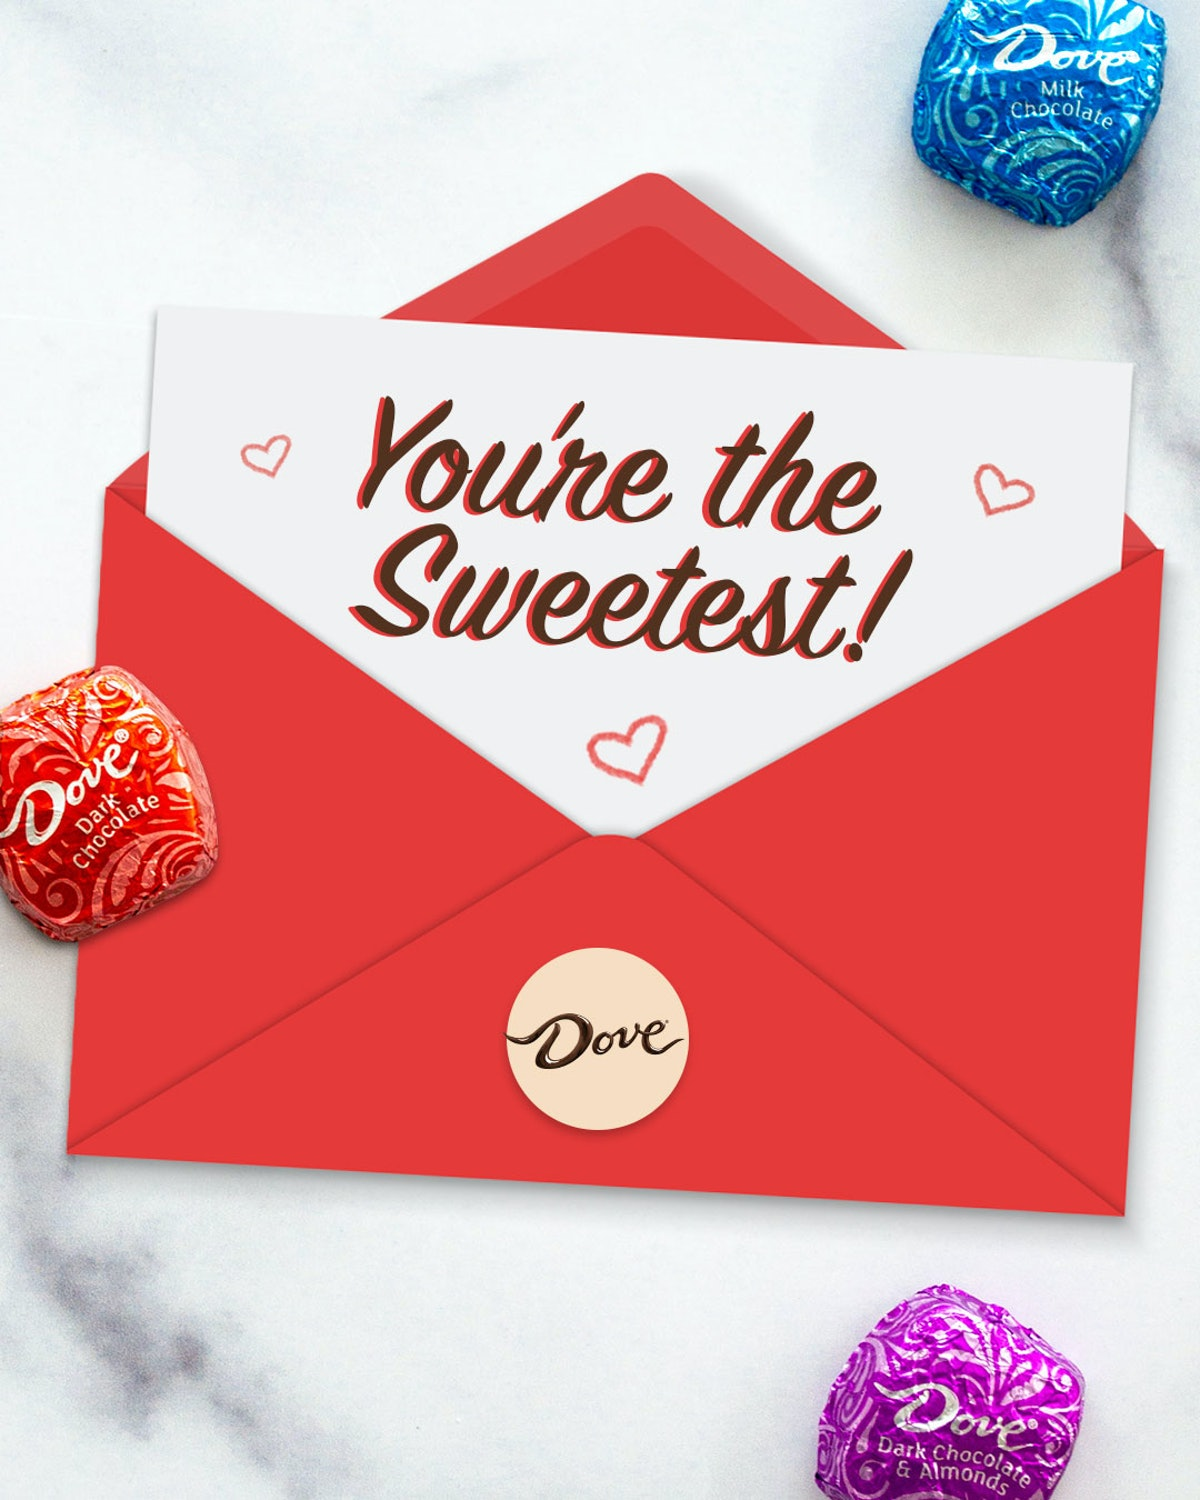 Dove Chocolate's Sweetest Day Giveaway is offering fans free chocolate